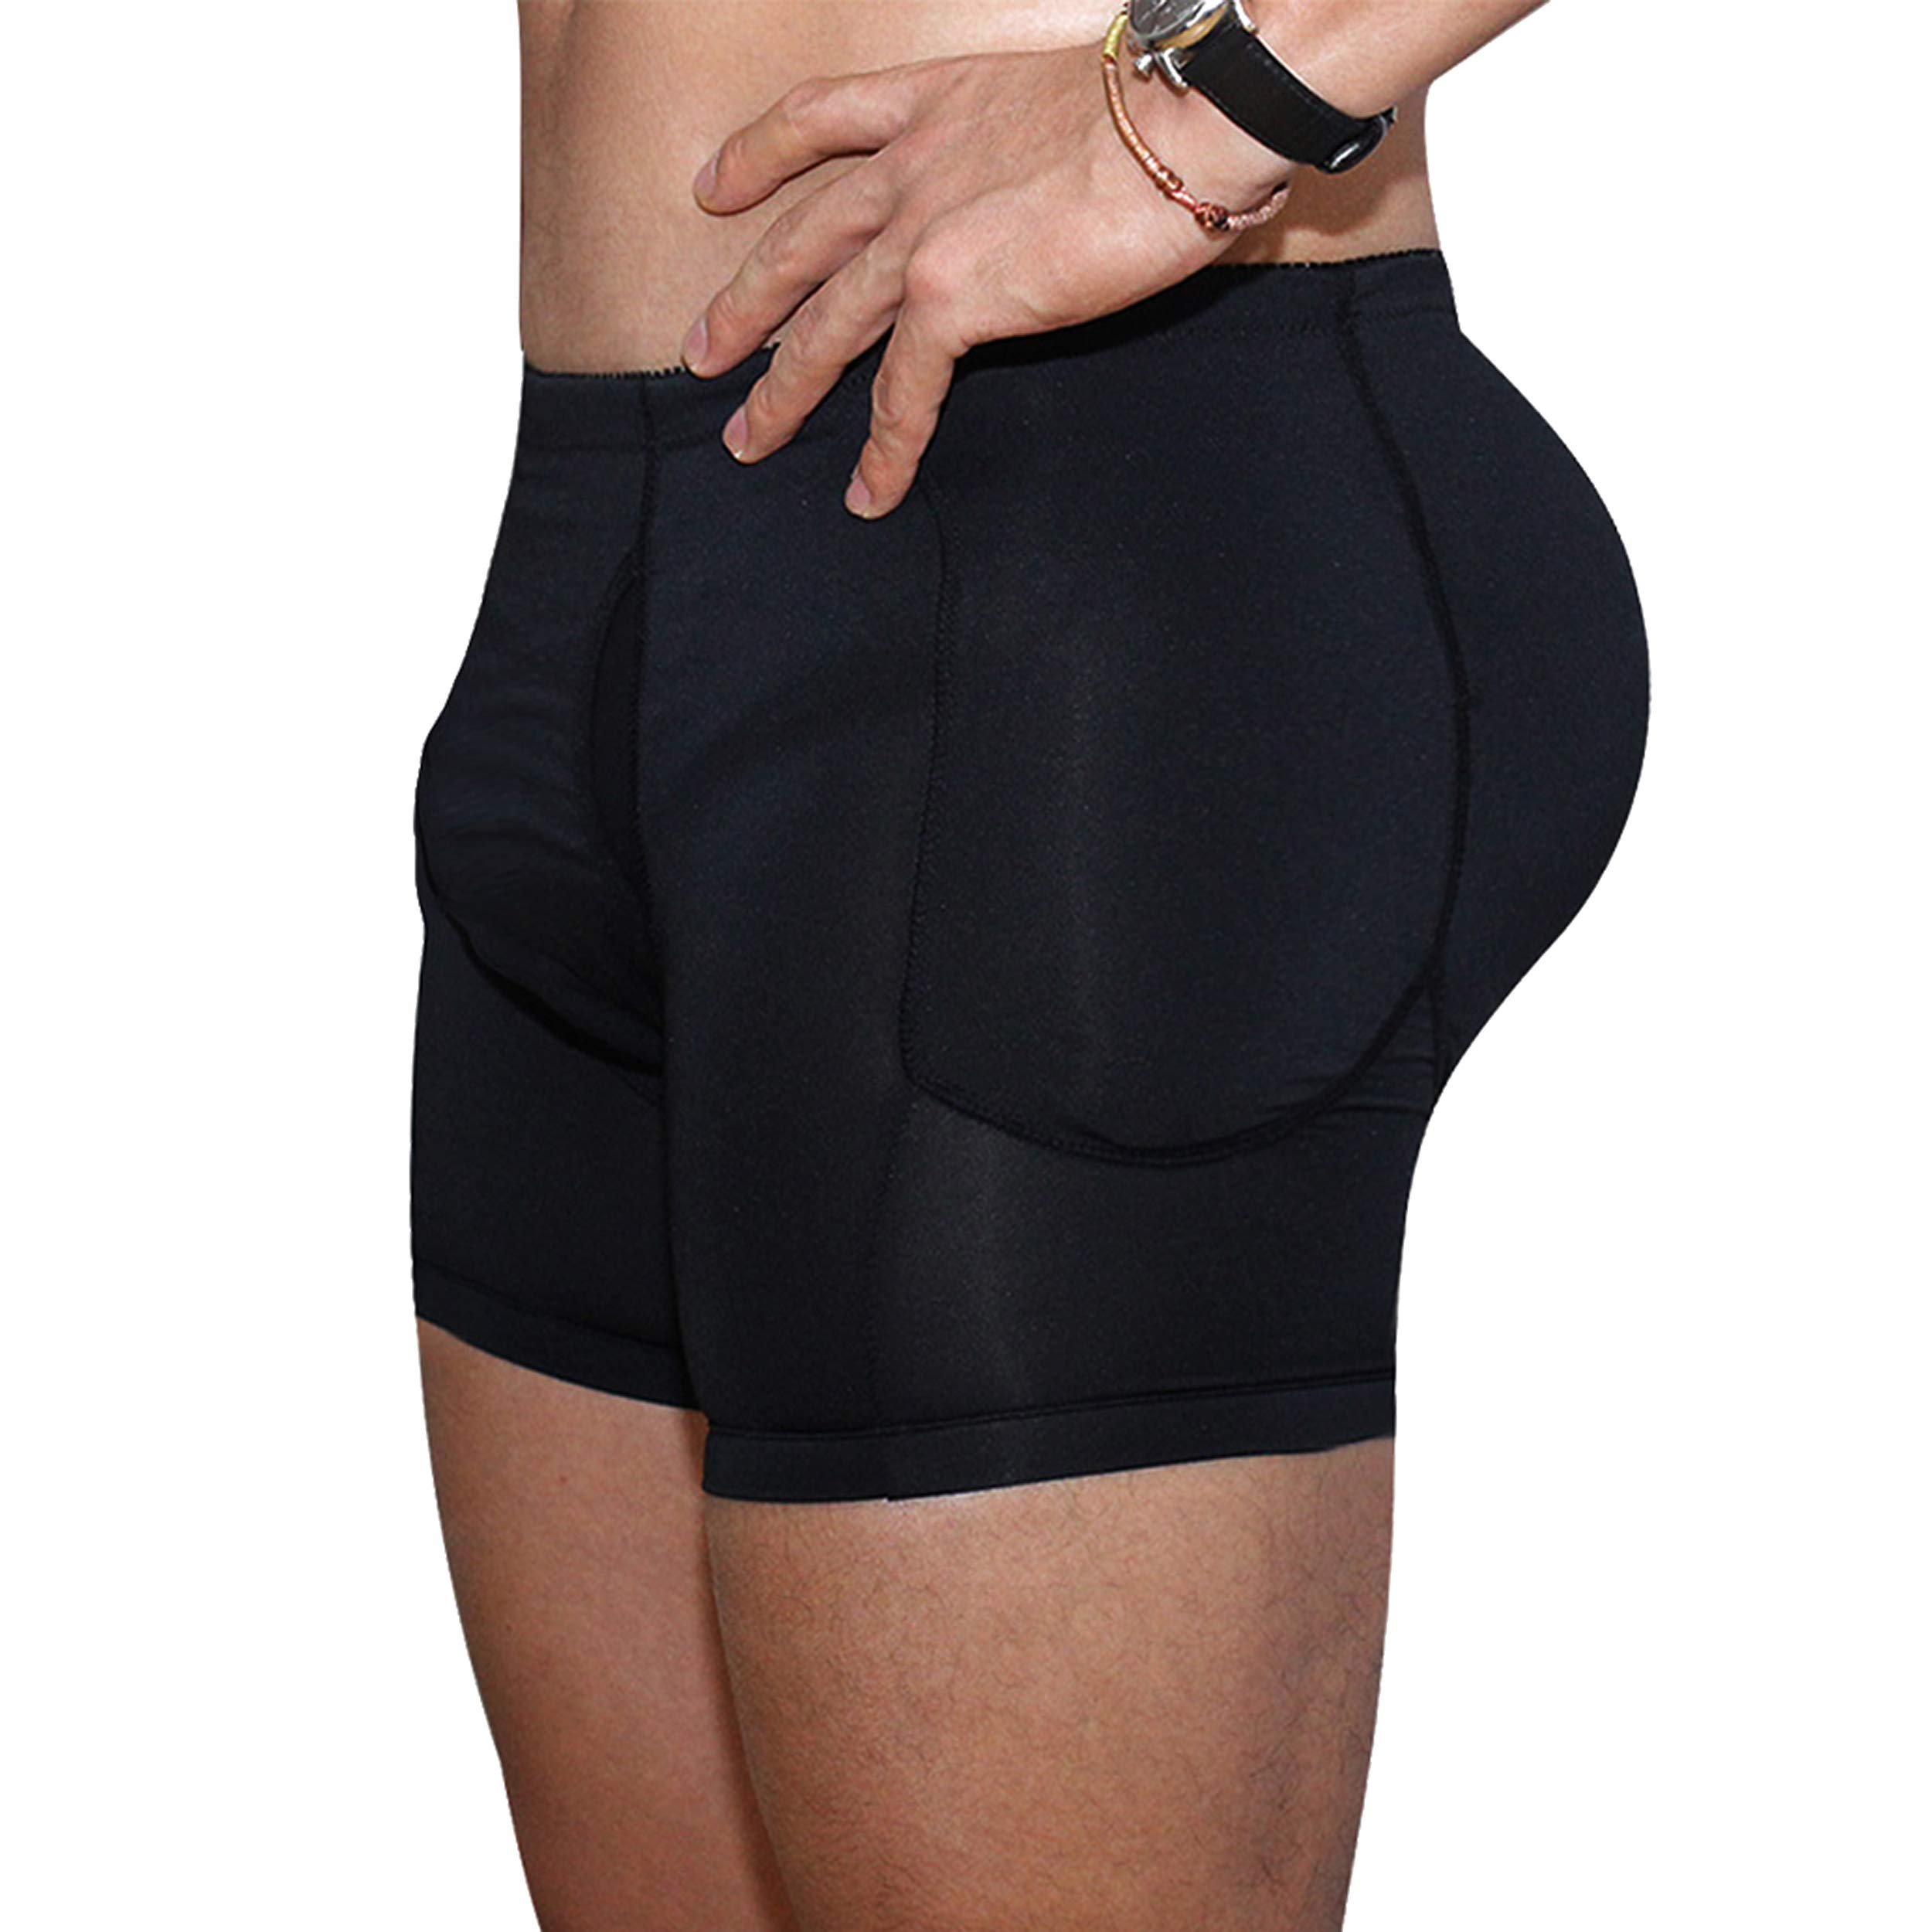 Queenral Men's Pad Shaper Panty Male Underwear with Butt Lifter Slimming Waist Shaper Black by Queenral